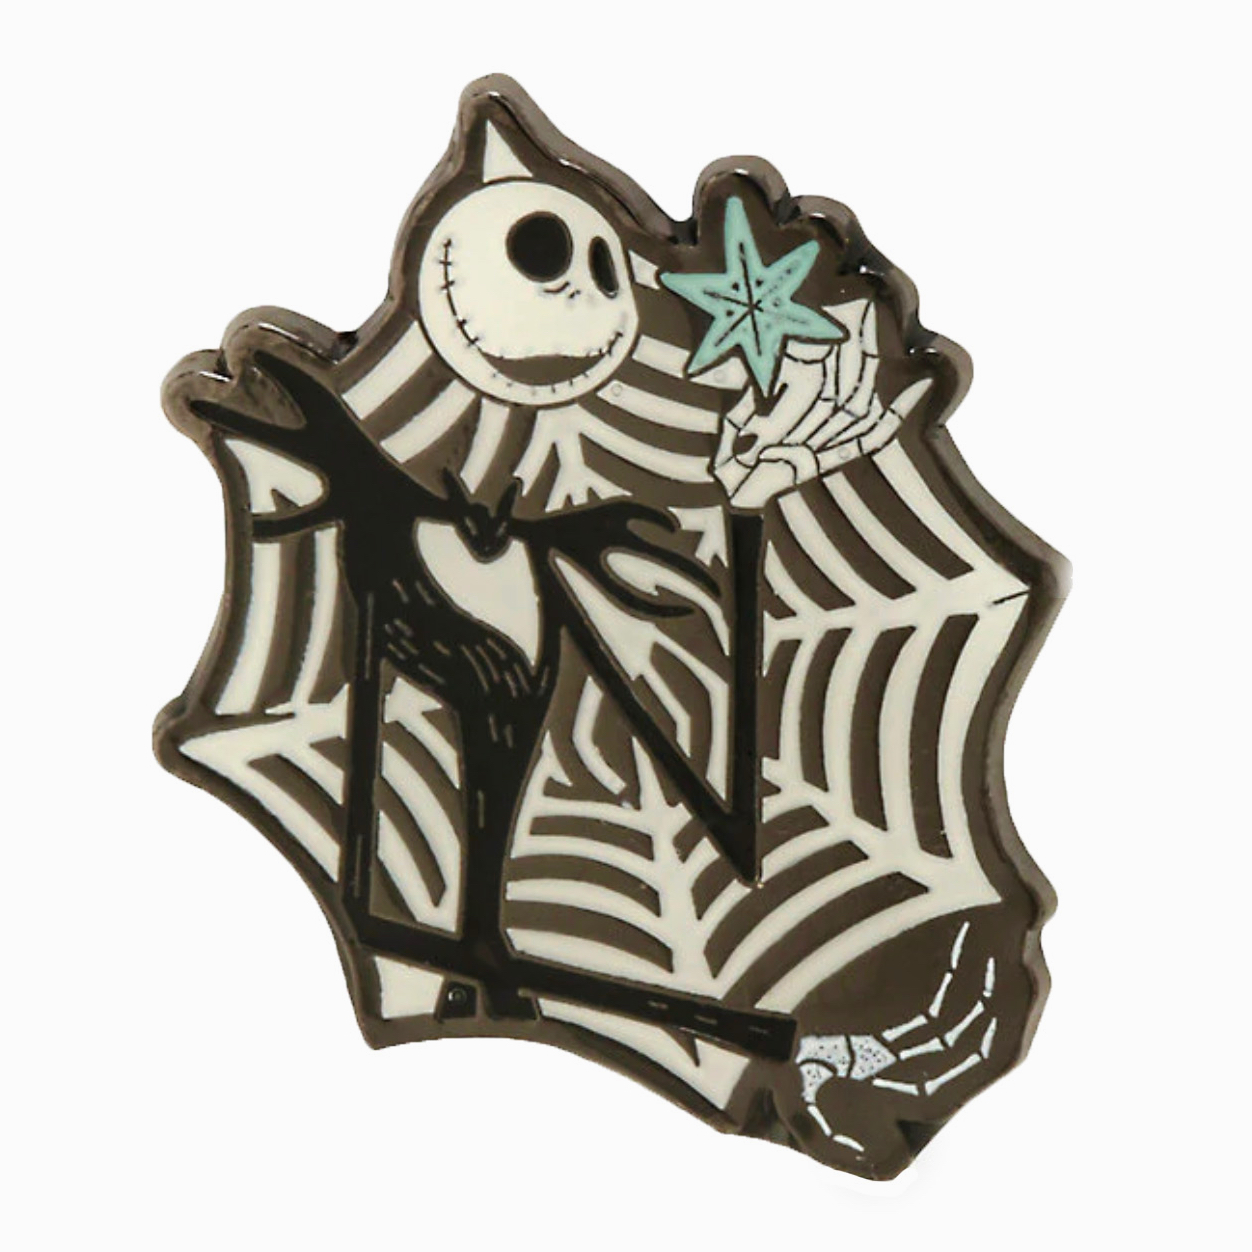 Nightmare Before Christmas Snowflake pin – Pinventory